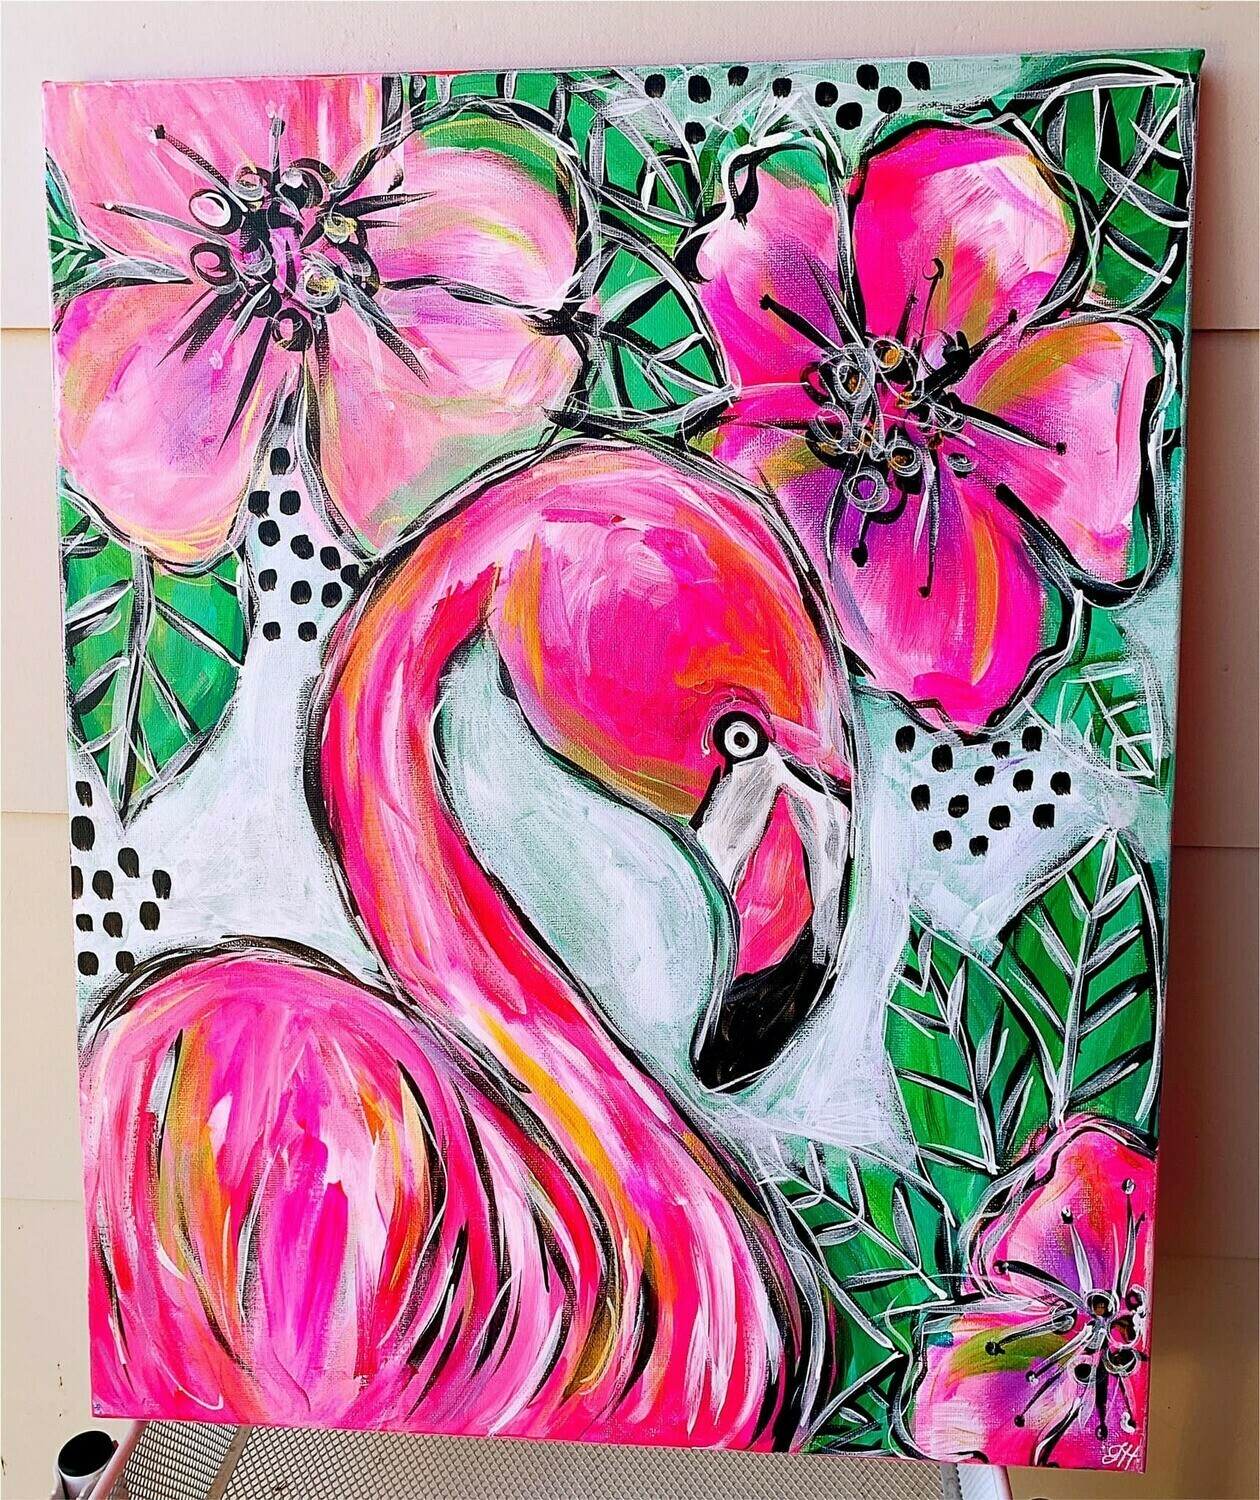 Paint pARTy at The Seed - Fri 8th Jan 7pm